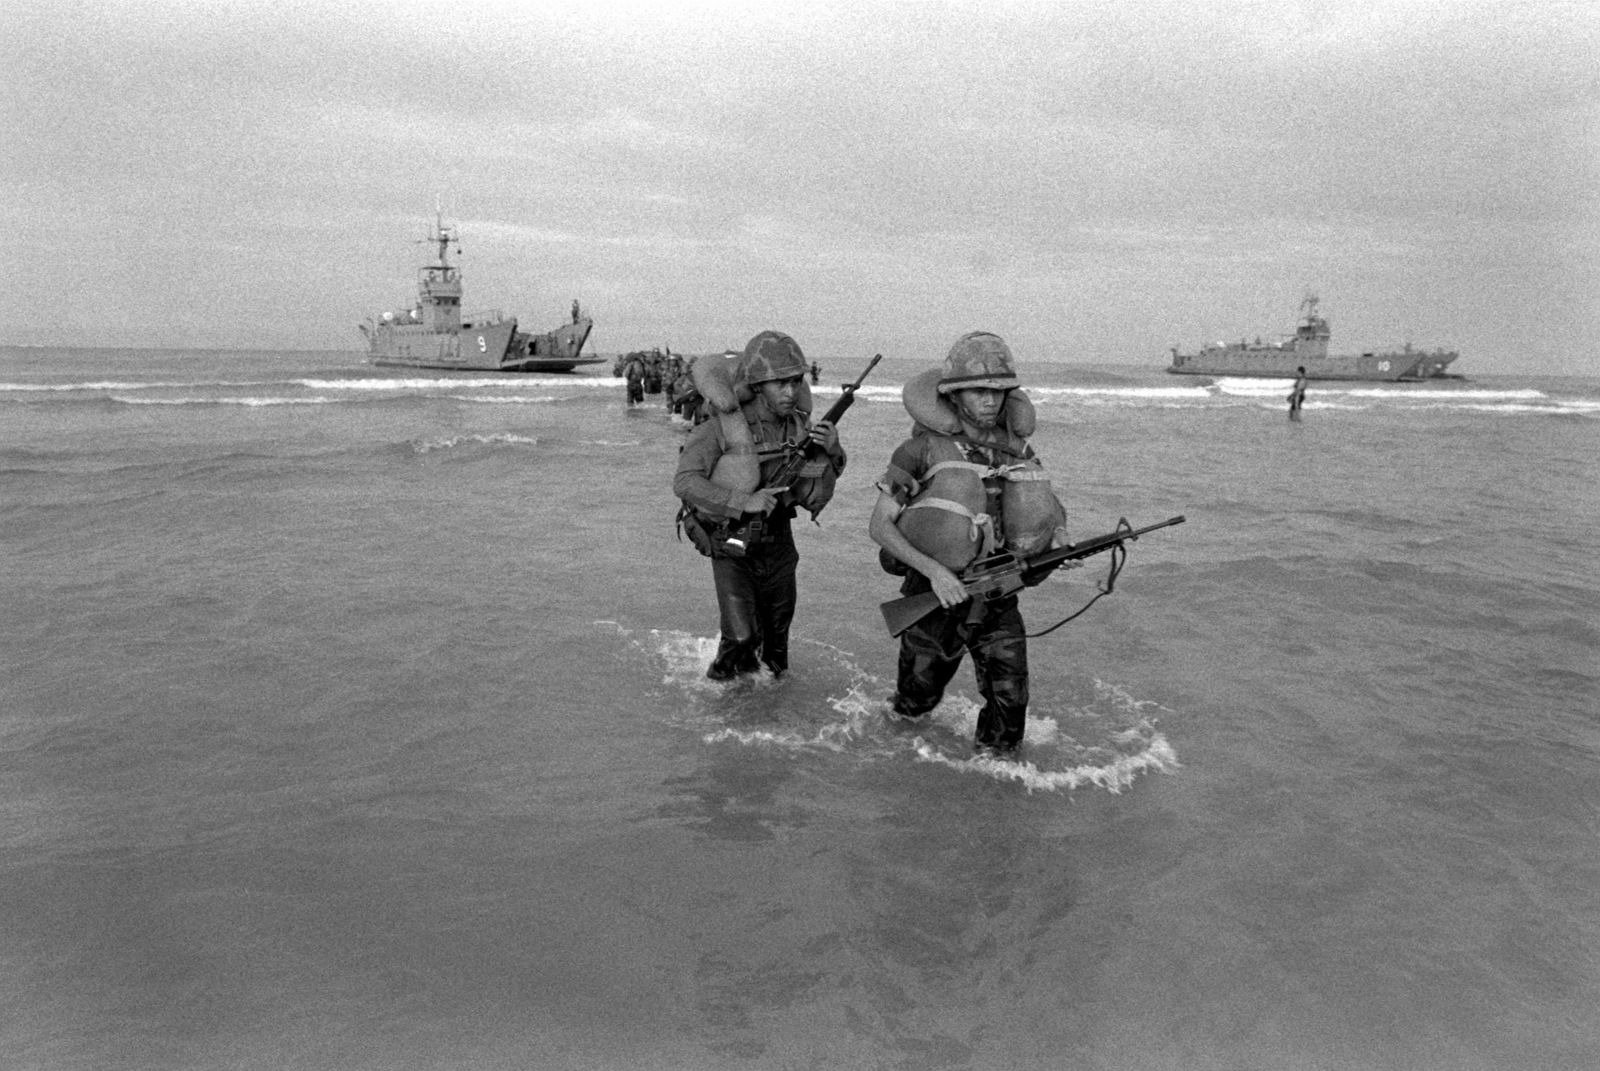 Royal Thai Marines equipped with M-16A1 rifles wade ashore after disembarking from the utility landing craft Wang Nok (LCU-9) during Cobra Gold '90, a combined Thai/U.S. exercise